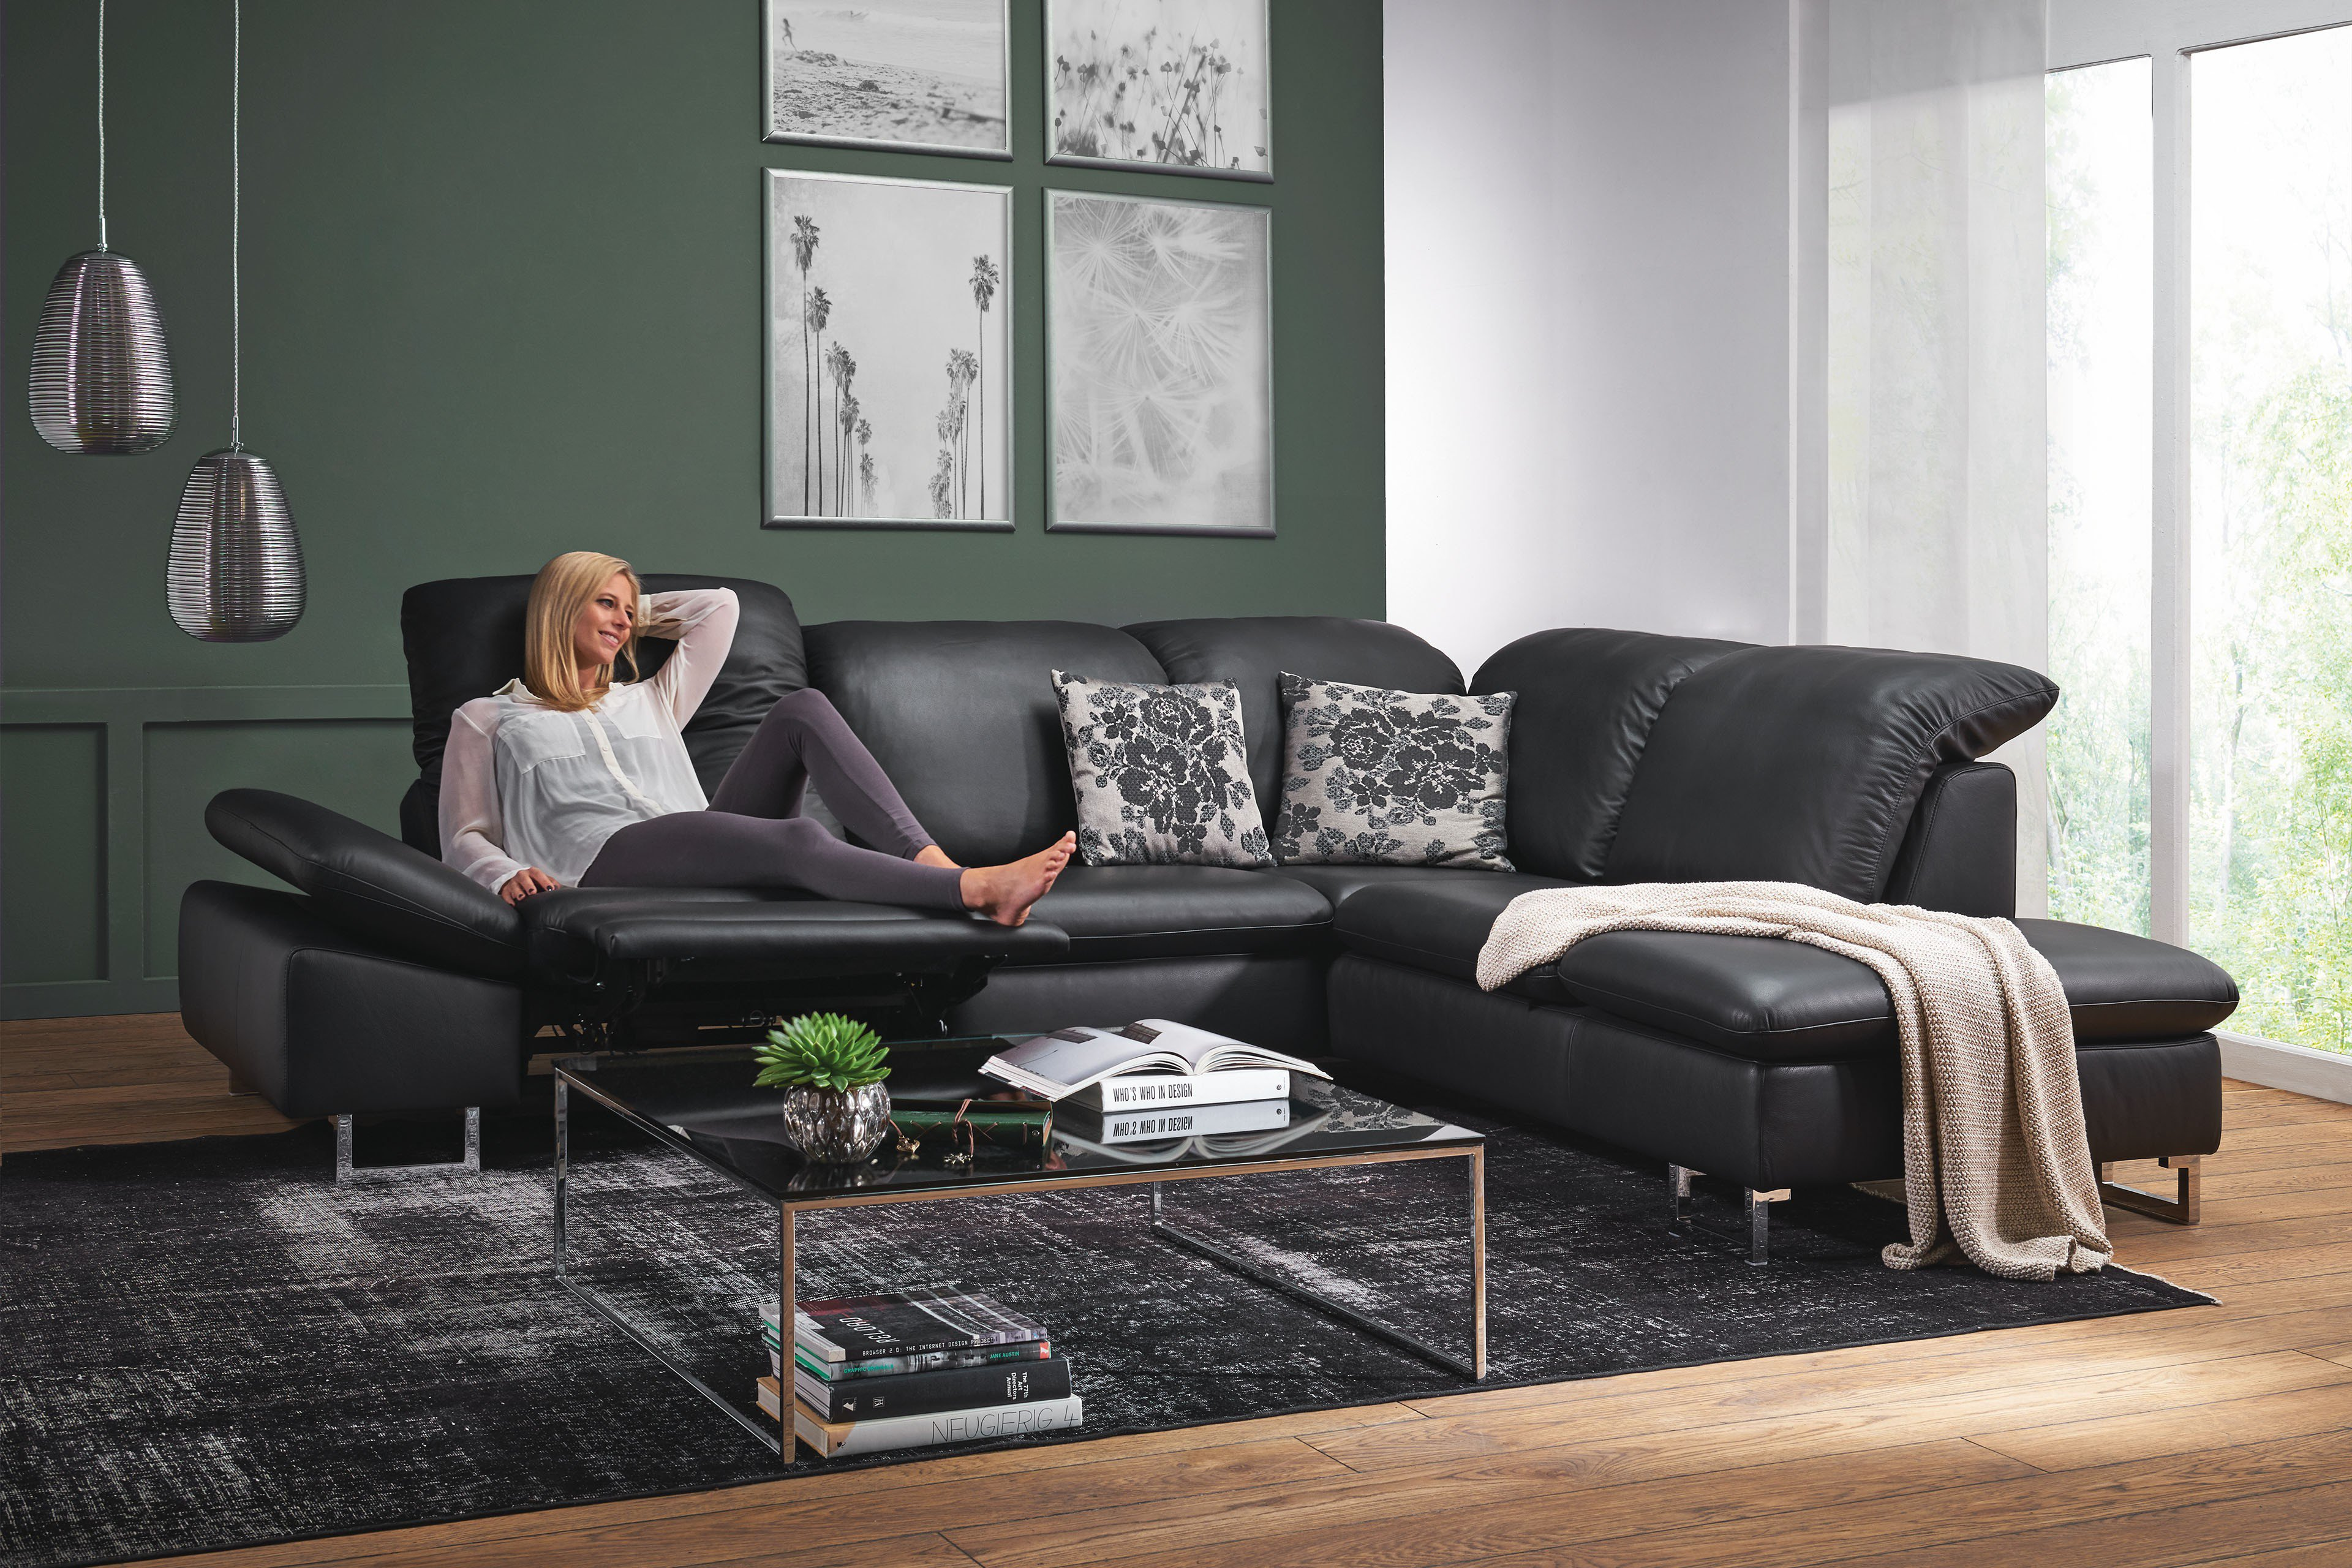 willi schillig 35270 enjoy relax ledersofa in schwarz m bel letz ihr online shop. Black Bedroom Furniture Sets. Home Design Ideas